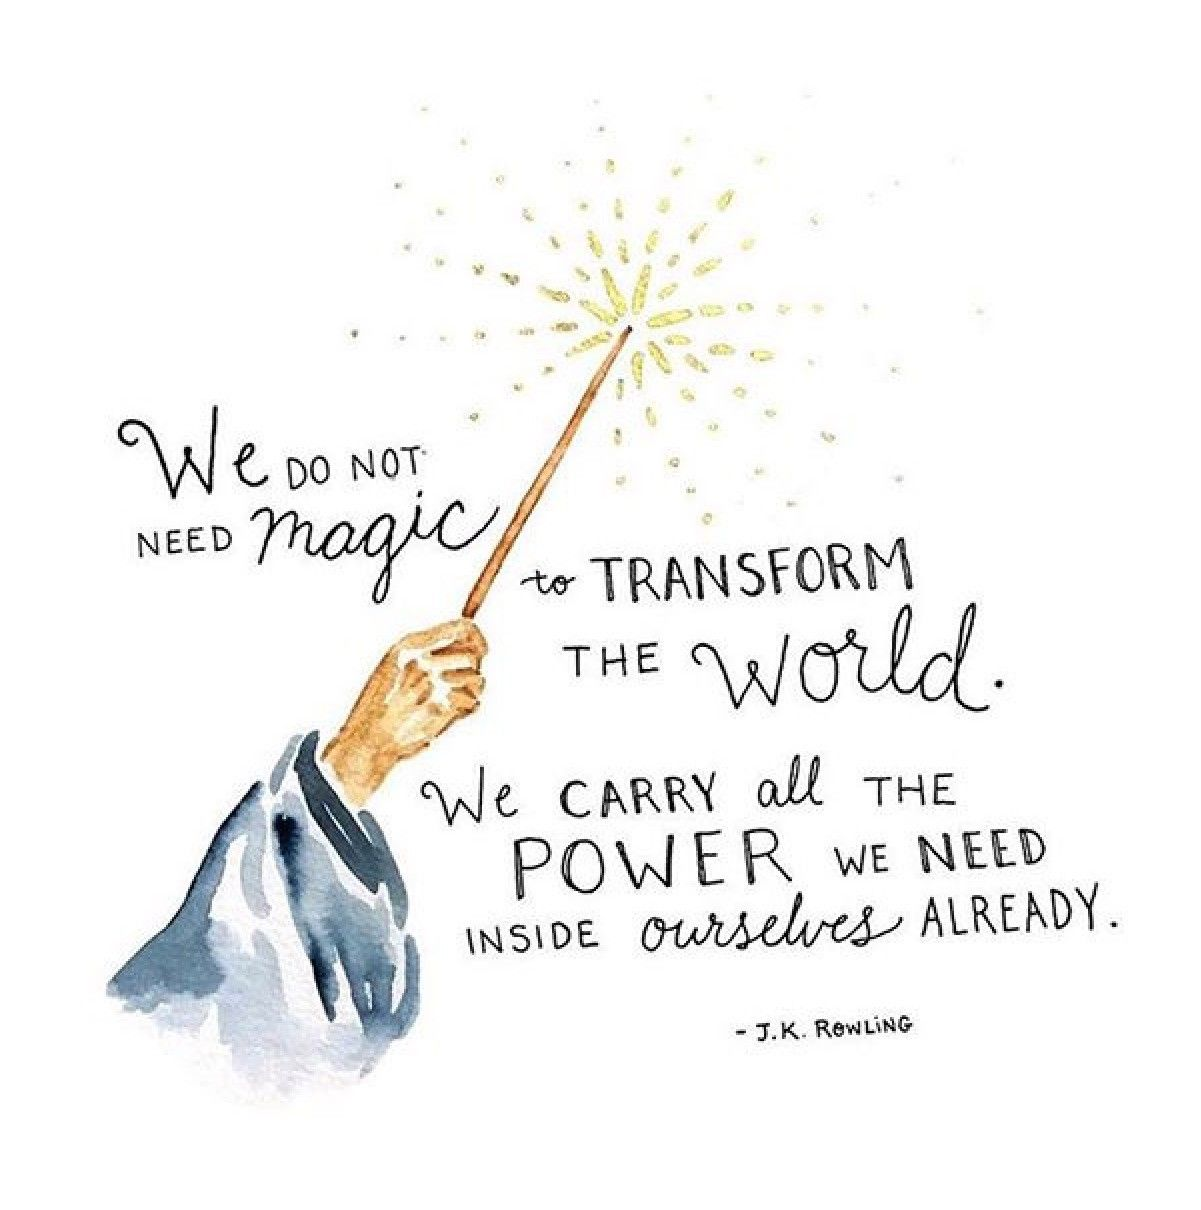 Harry Potter Quotes Love Amazing We Do Not Need Magic To Transform Our World Harry Potter Quote Albus